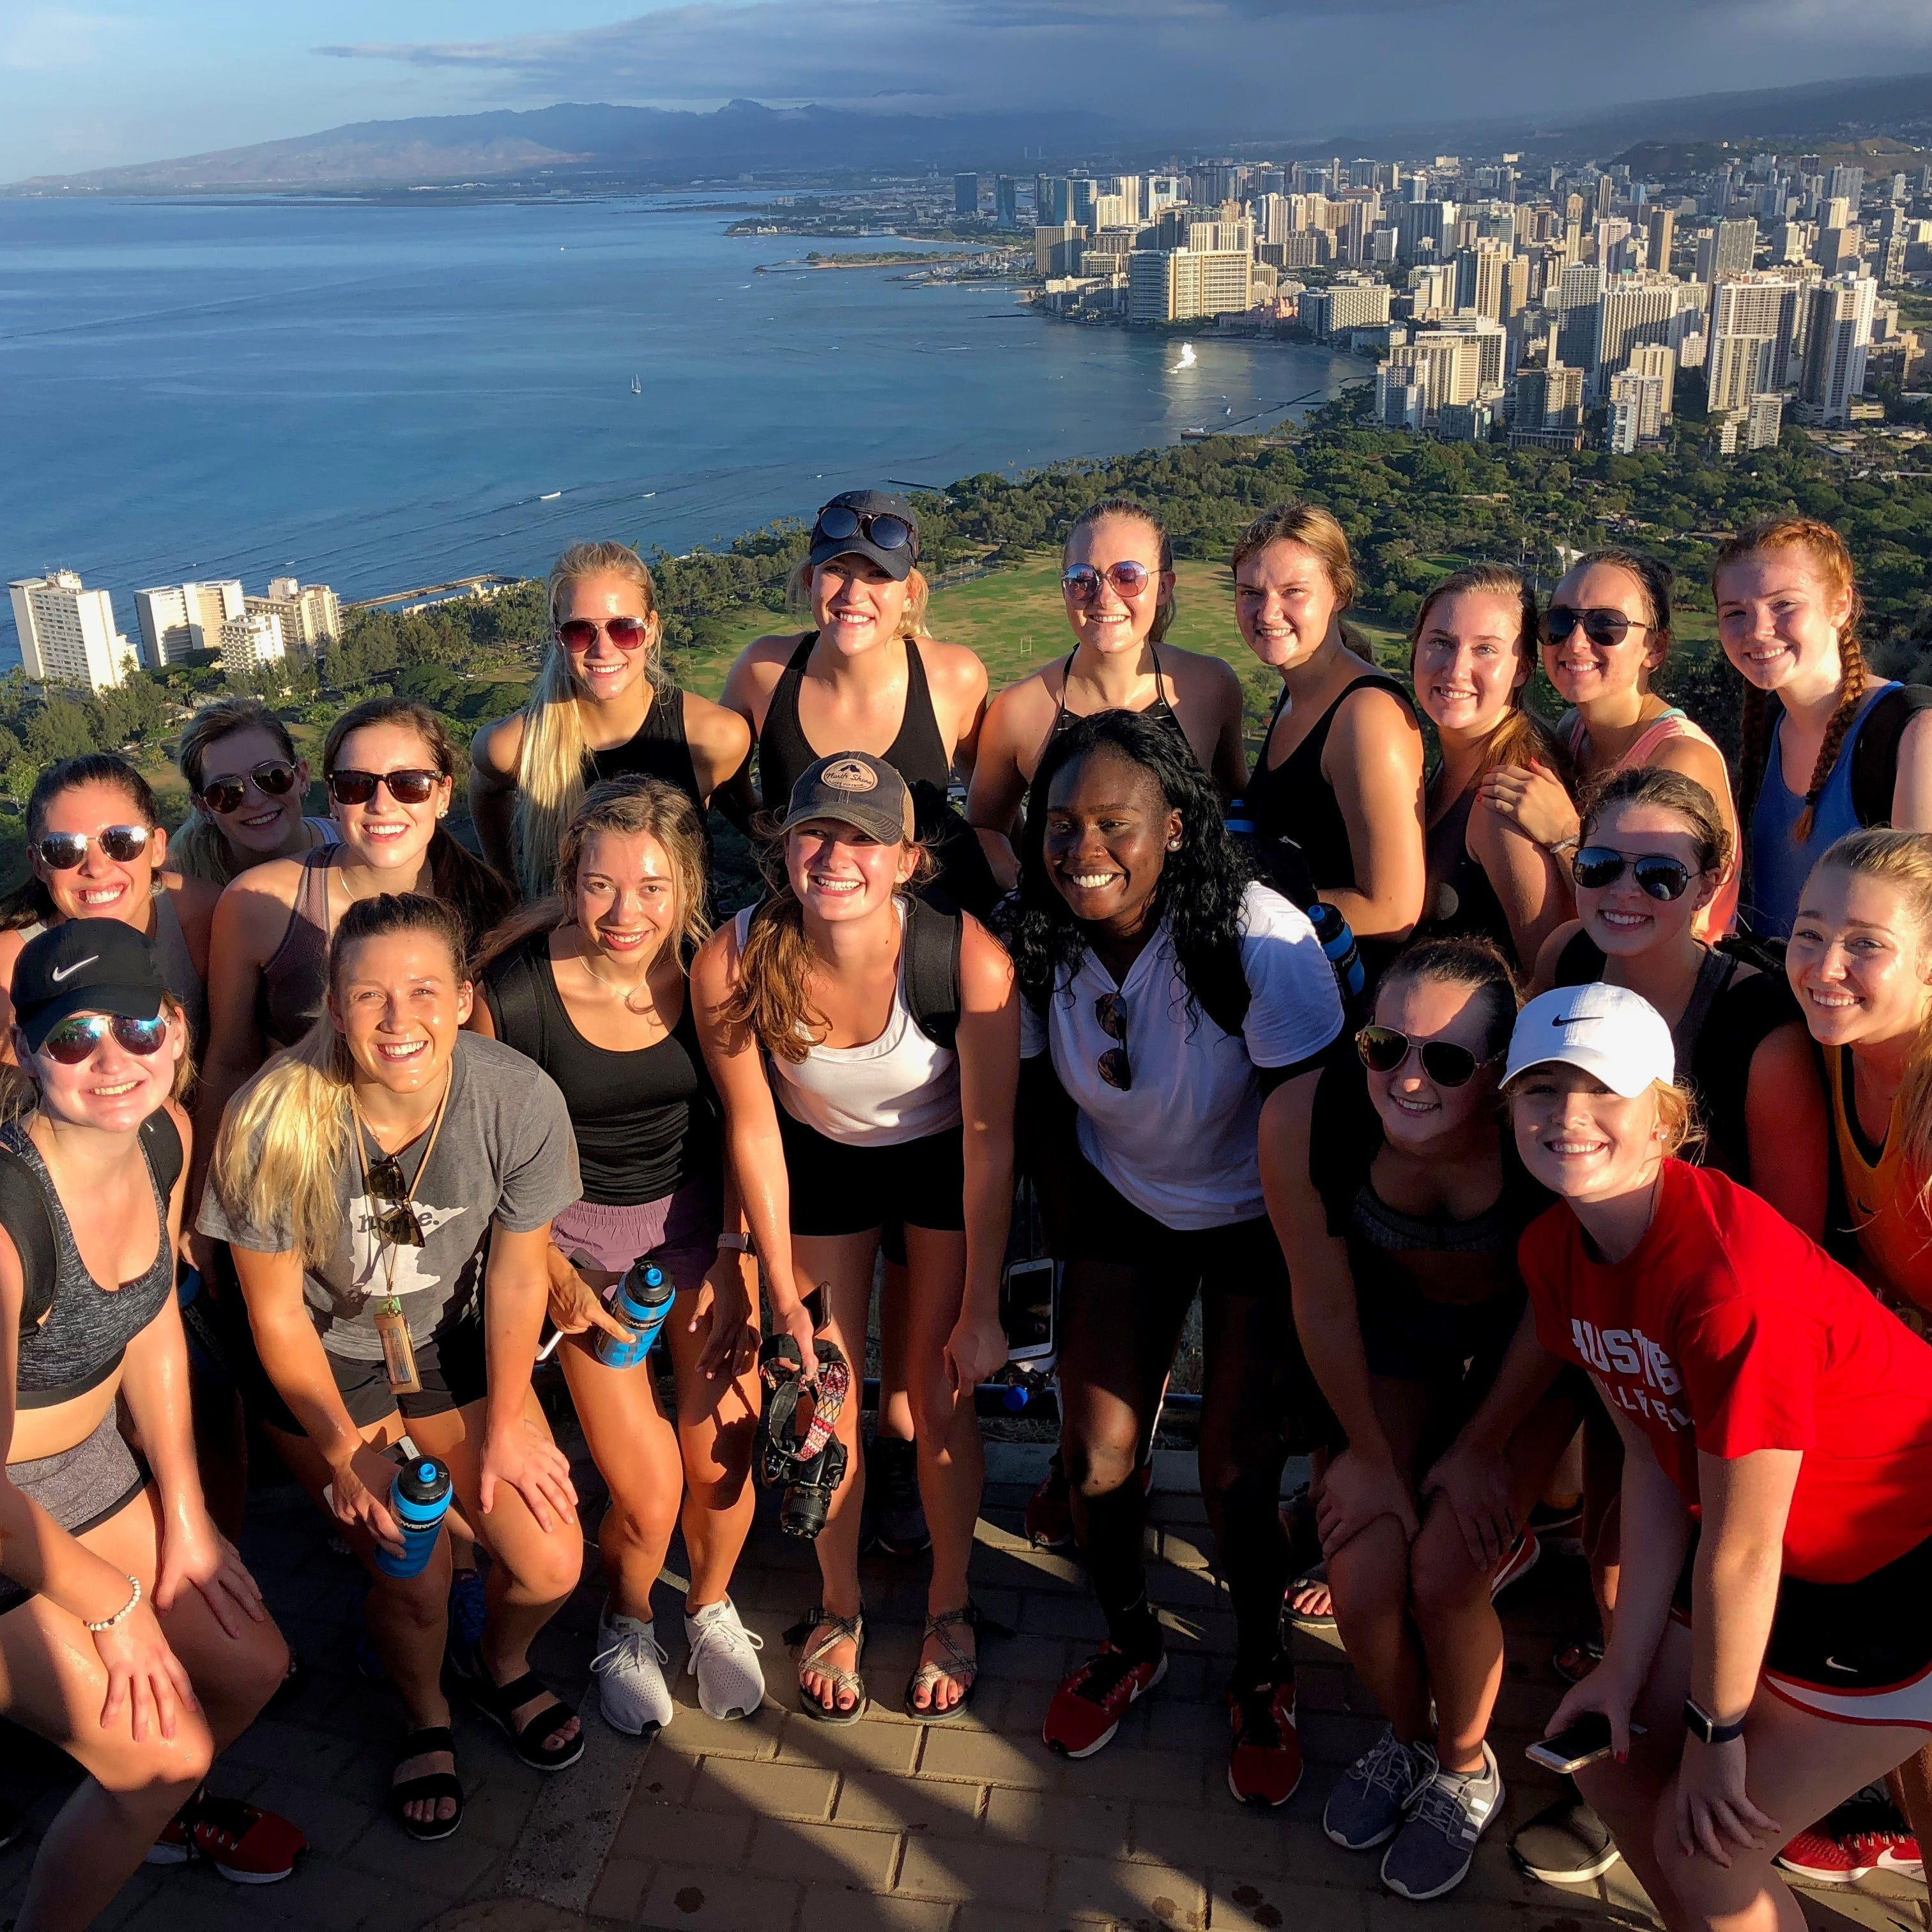 Hurricane Lane delays season-opener for SCSU volleyball team in Hawaii